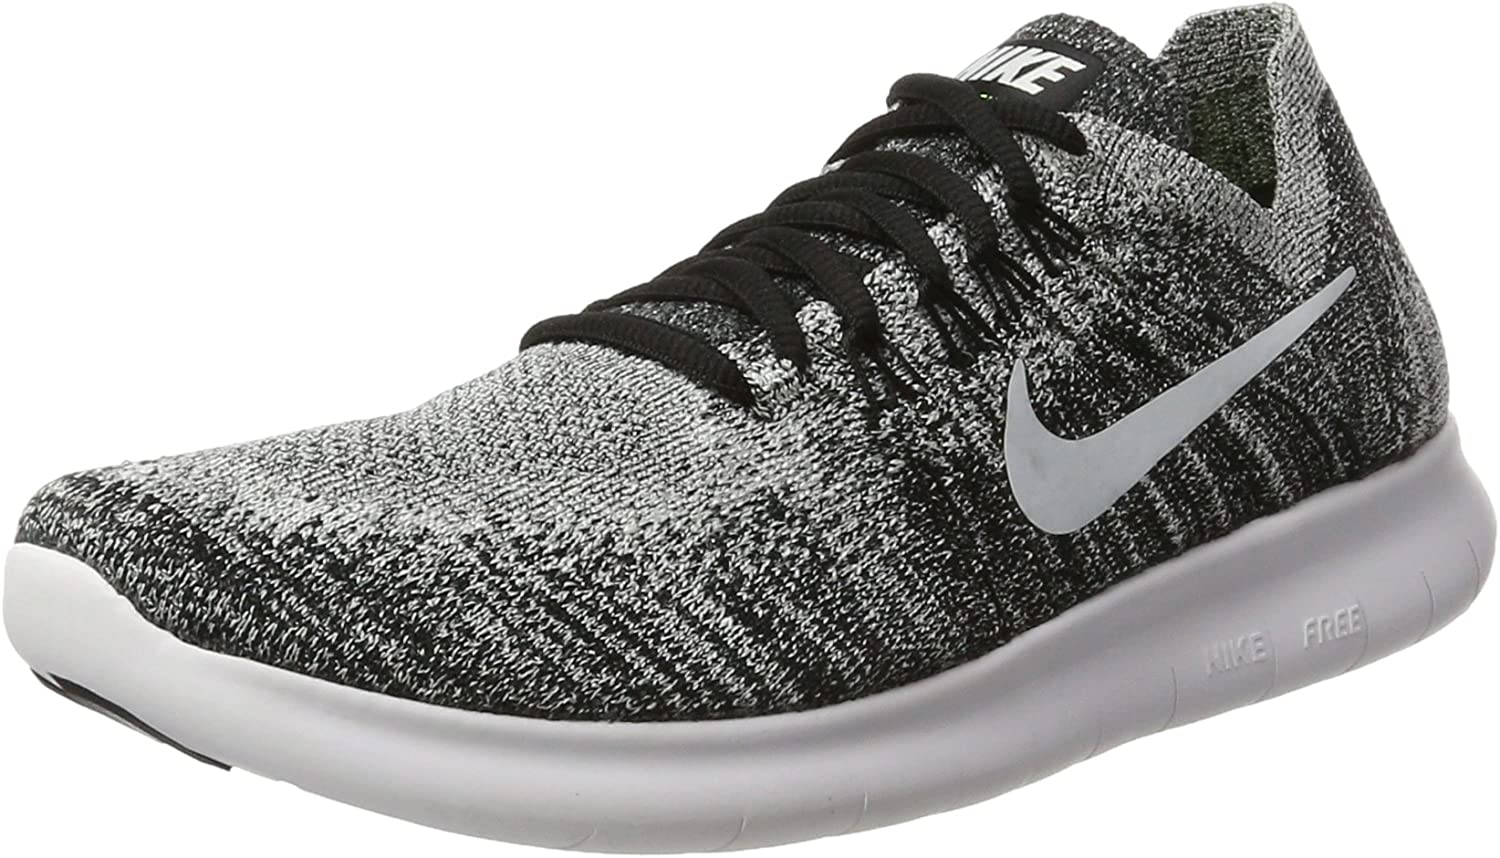 Nike Women S Free Rn Flyknit 2017 Road Running Shoes Shoes